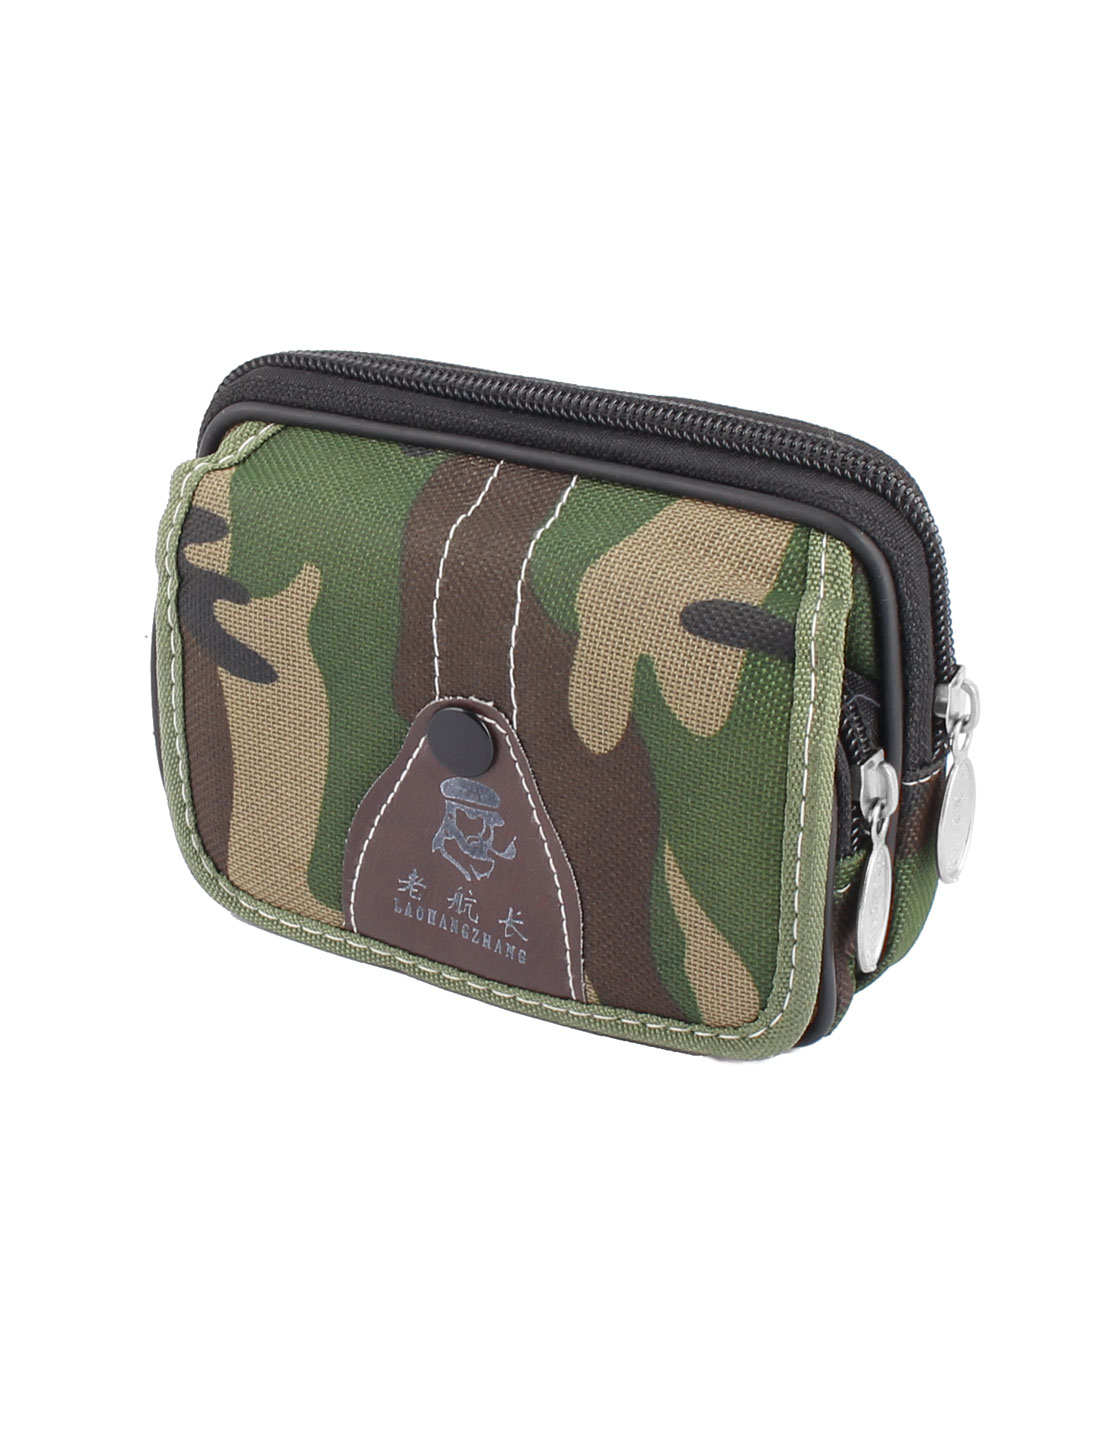 Camouflage Pattern Cell Phone Coin Waist Pocket Pouch Purse Wallet Pack Bag